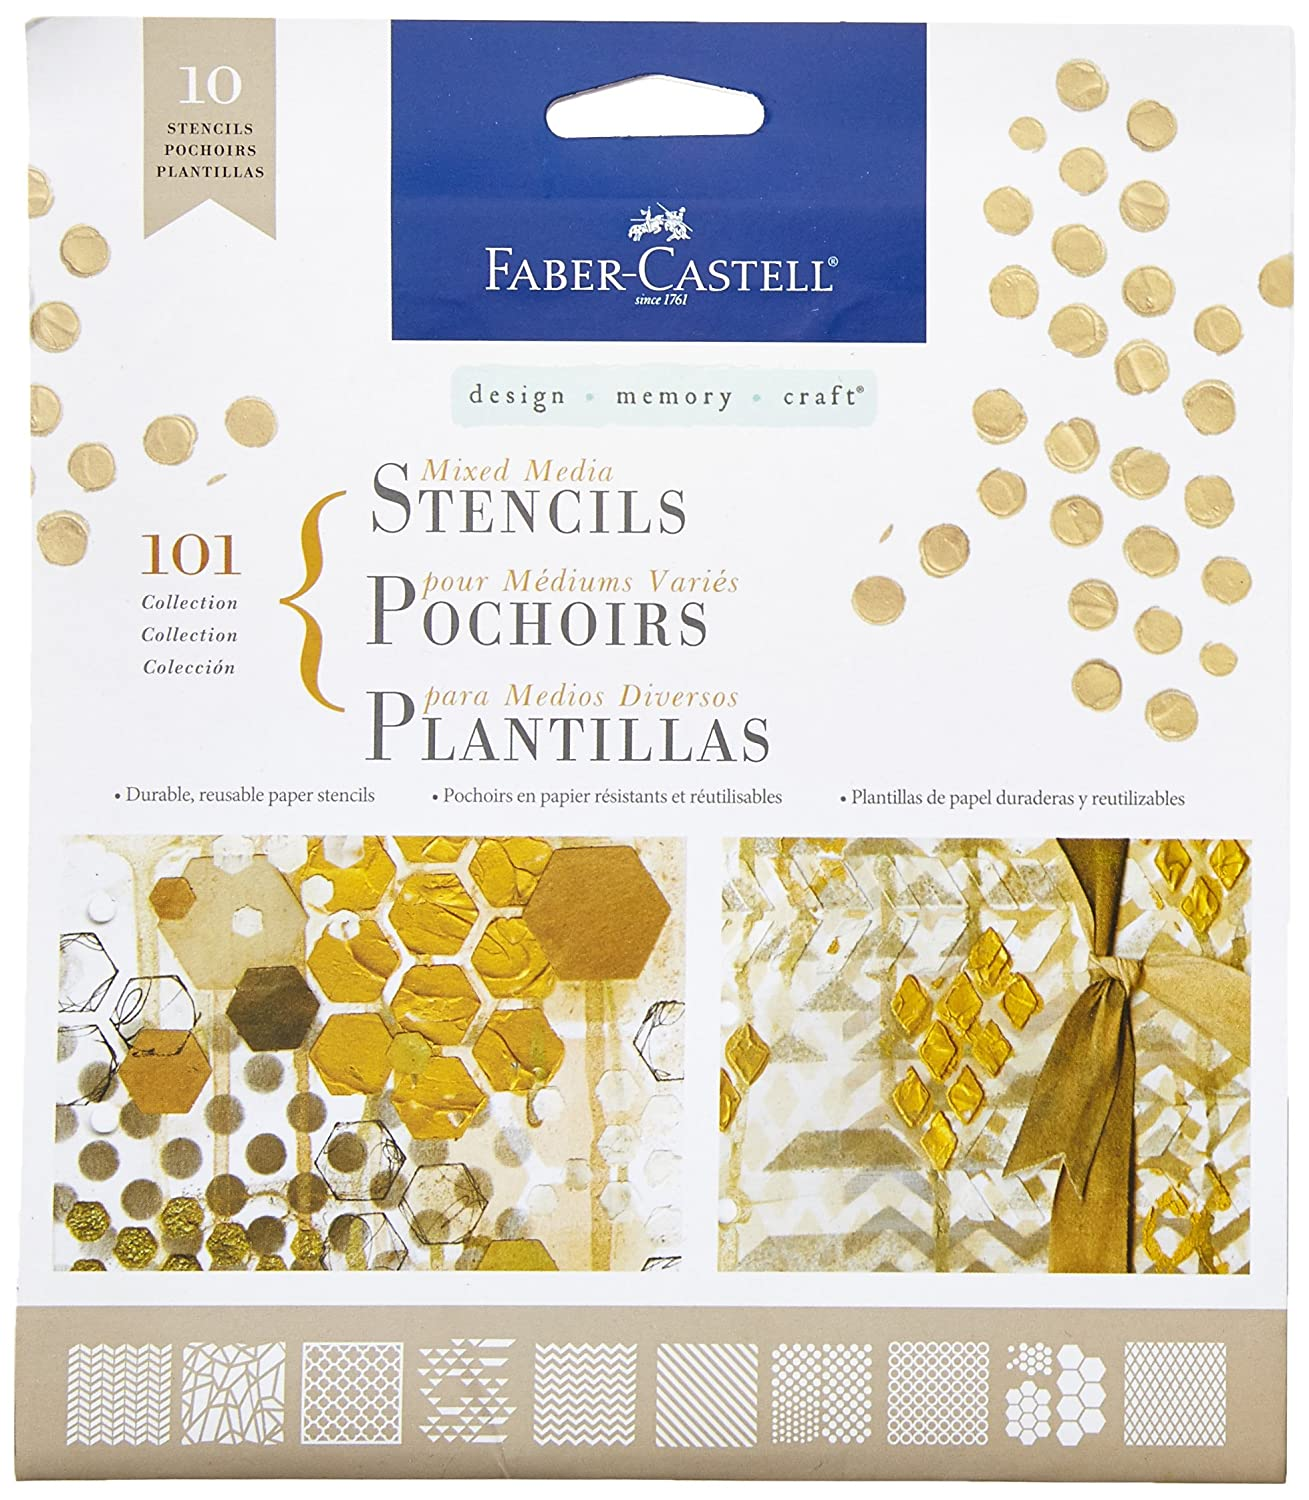 Design Memory Craft Faber-Castell Mix Media Stencils 101 Graphic (FC770600) FABER CASTELL FBR770600